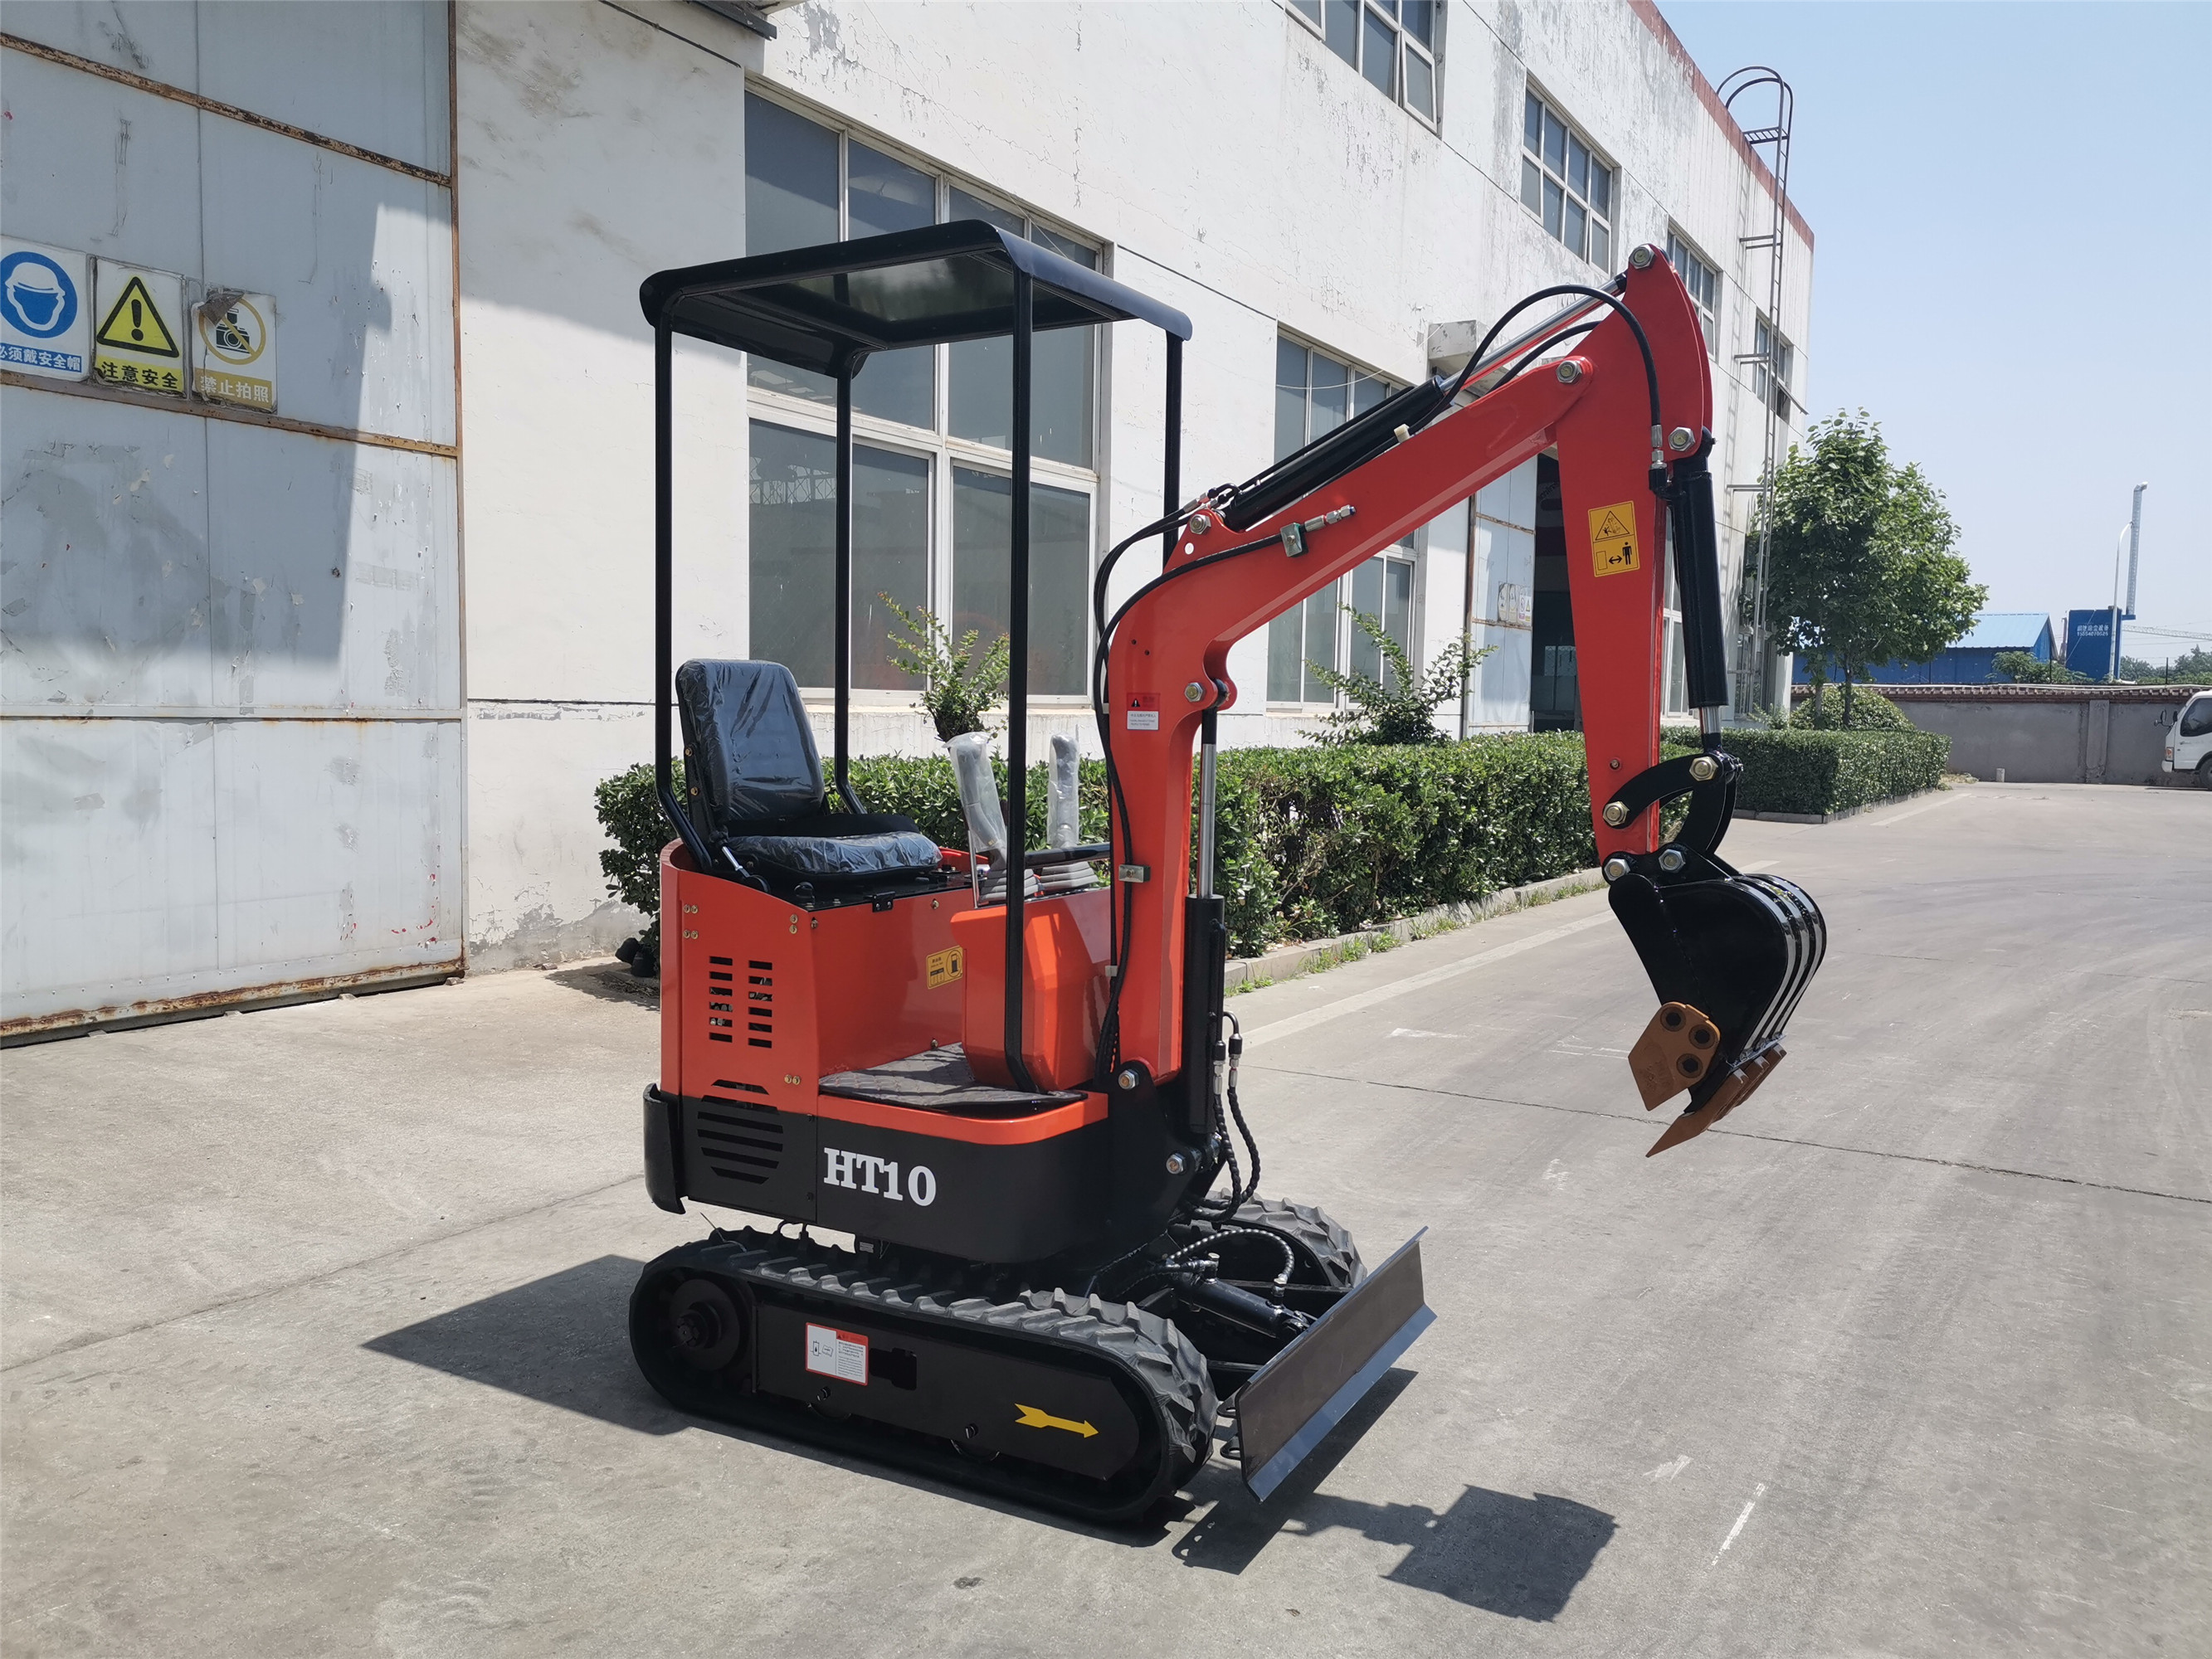 HIGHTOP Excavator China Mini Excavator Crawler Excavator For Garden Use